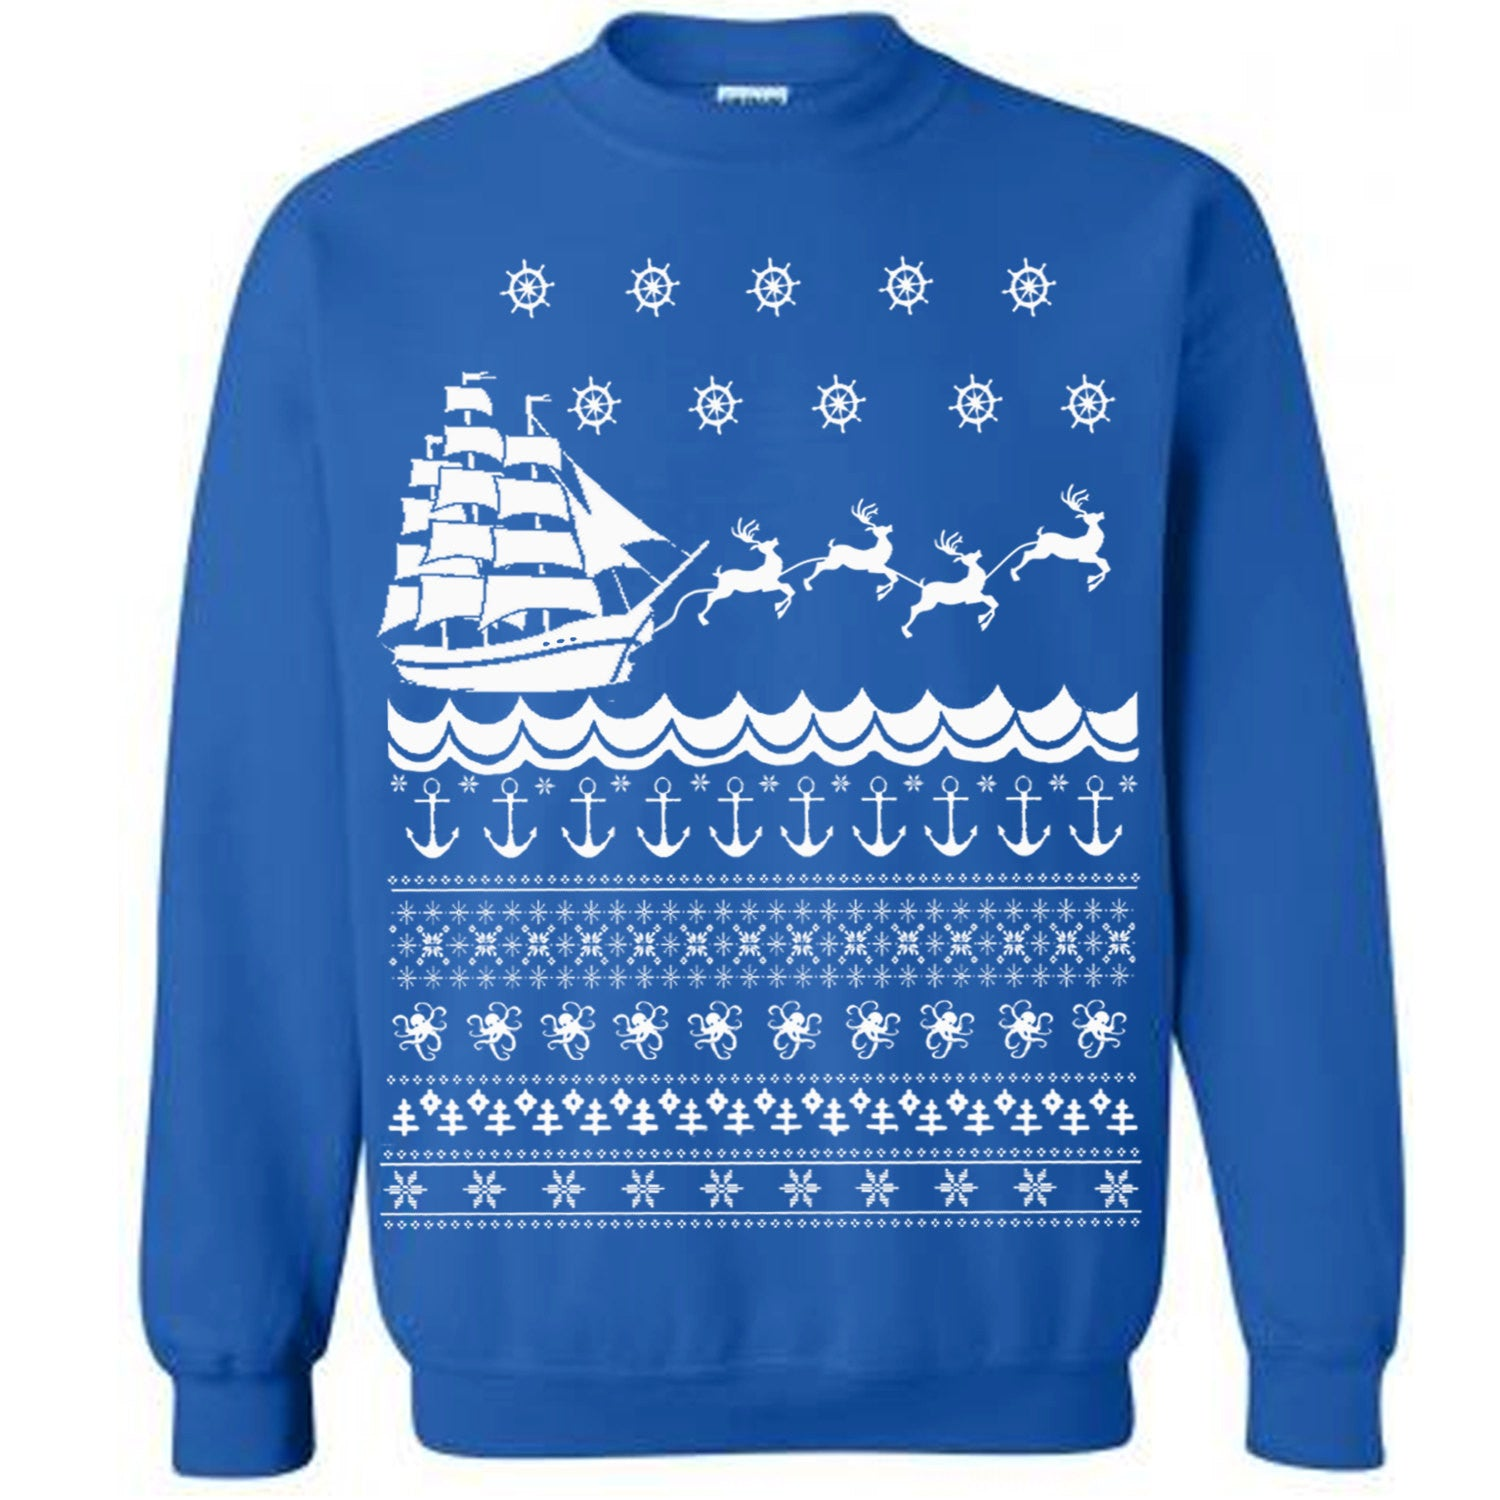 the nautical ugly christmas sweater flex fleece pullover classic sweatshirt s m l xl and xxl 3 color options - Classic Christmas Sweaters